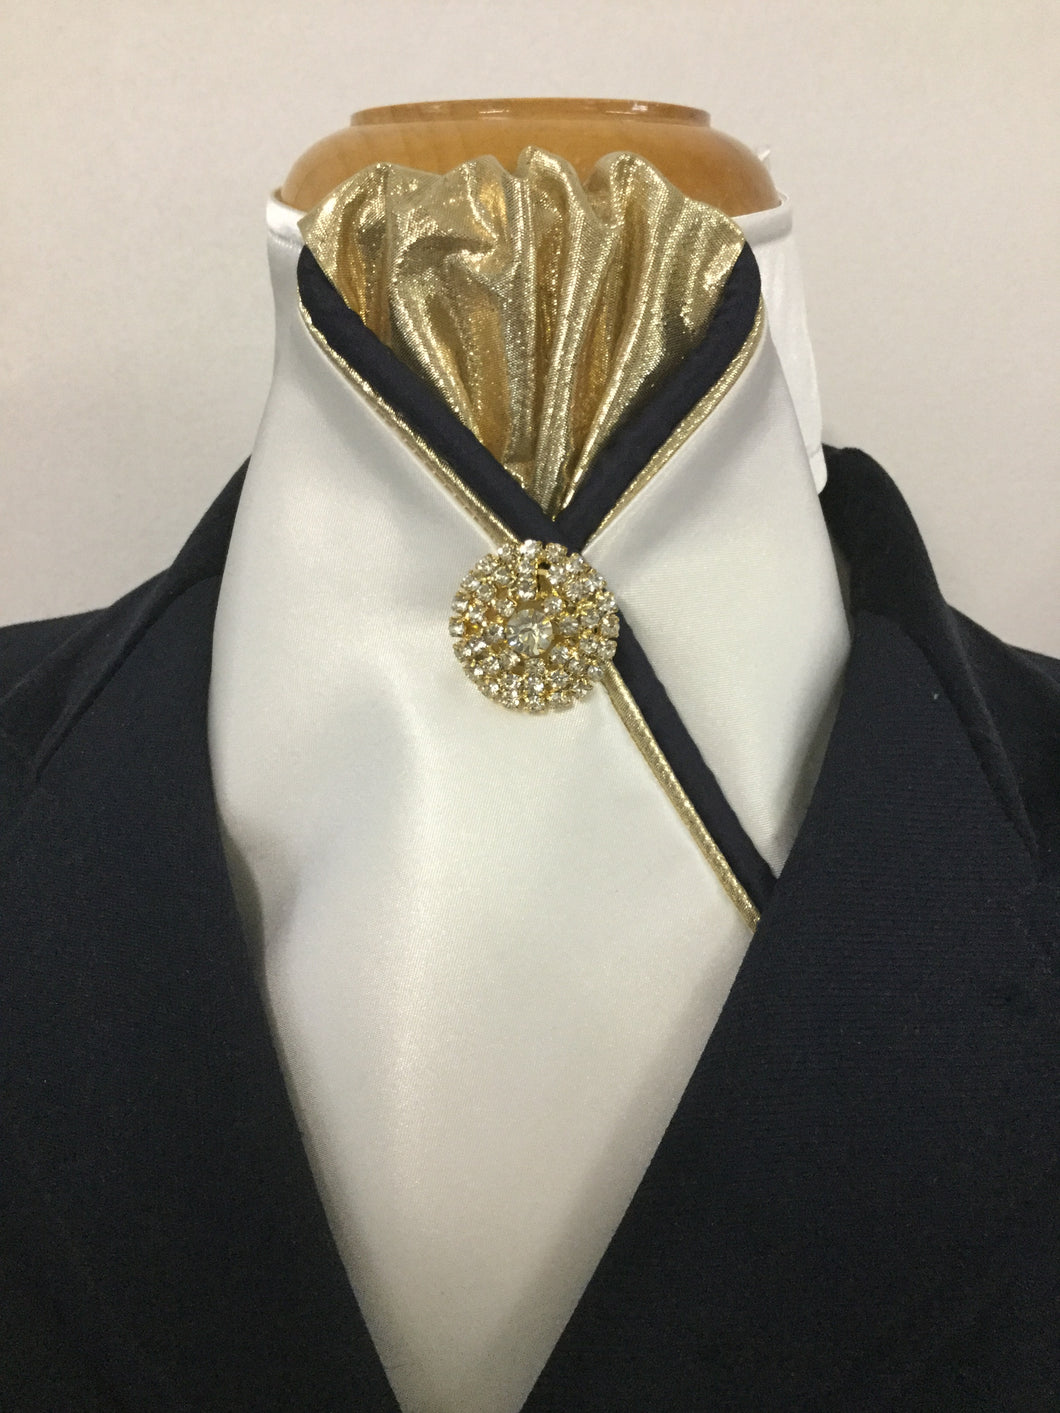 The HHD 'Sophie' Custom Stock Tie in Navy & Gold Rhinestone Pin